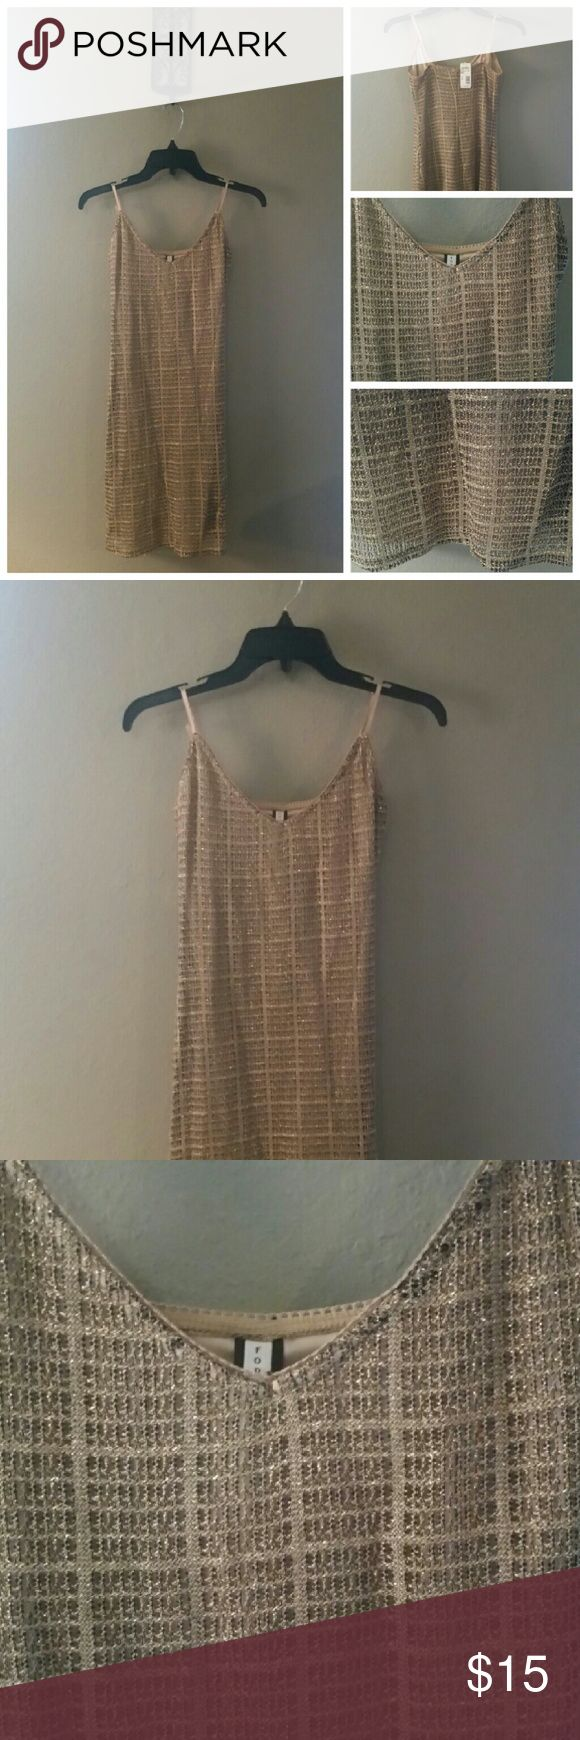 NWT FOREVER 21 GOLD MINI DRESS FOREVER 21 GOLD MINI DRESS SIZE SMALL, LENGTH 31 IN, COLOR GOLD Forever 21 Dresses Mini